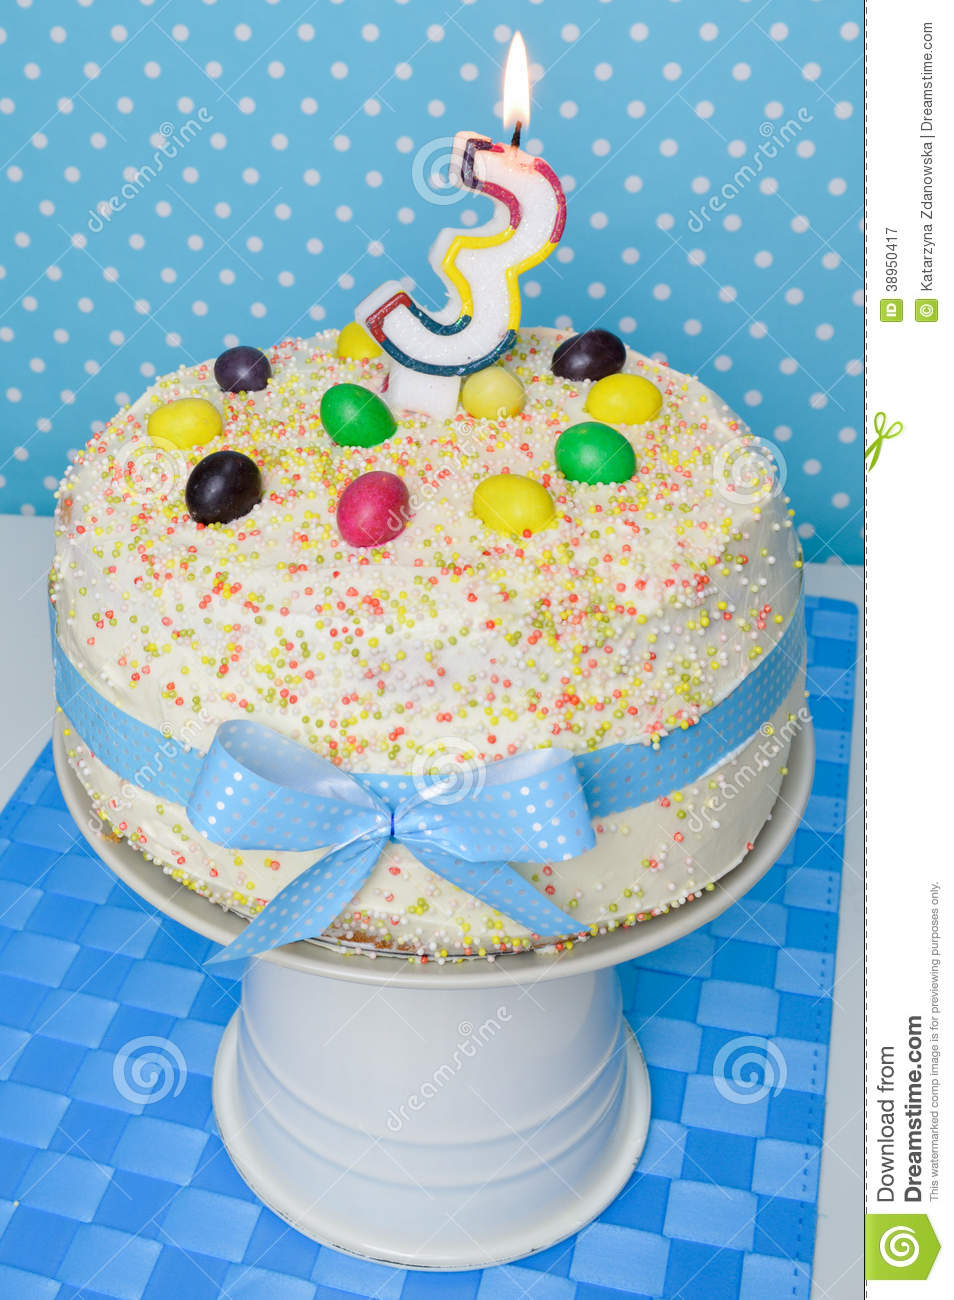 Birthday Cake For Kids Party Stock Image Image Of Layer Blue